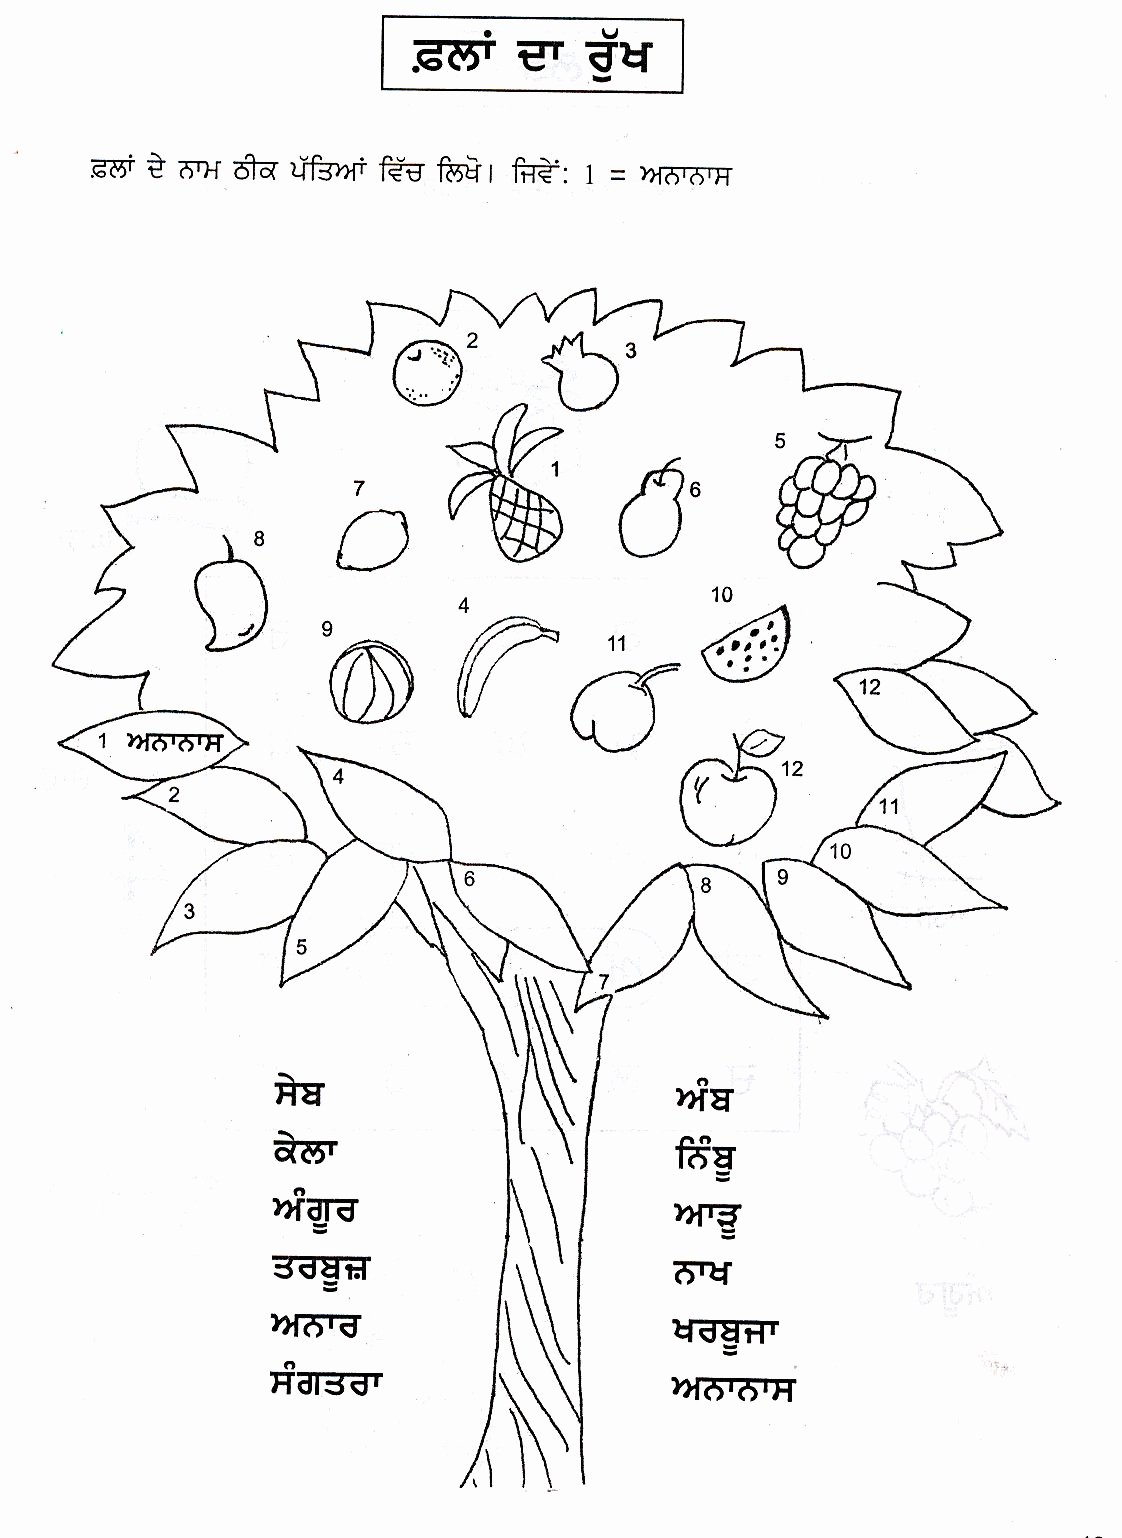 Punjabi Worksheets for Preschoolers Inspirational Punjabi Worksheets